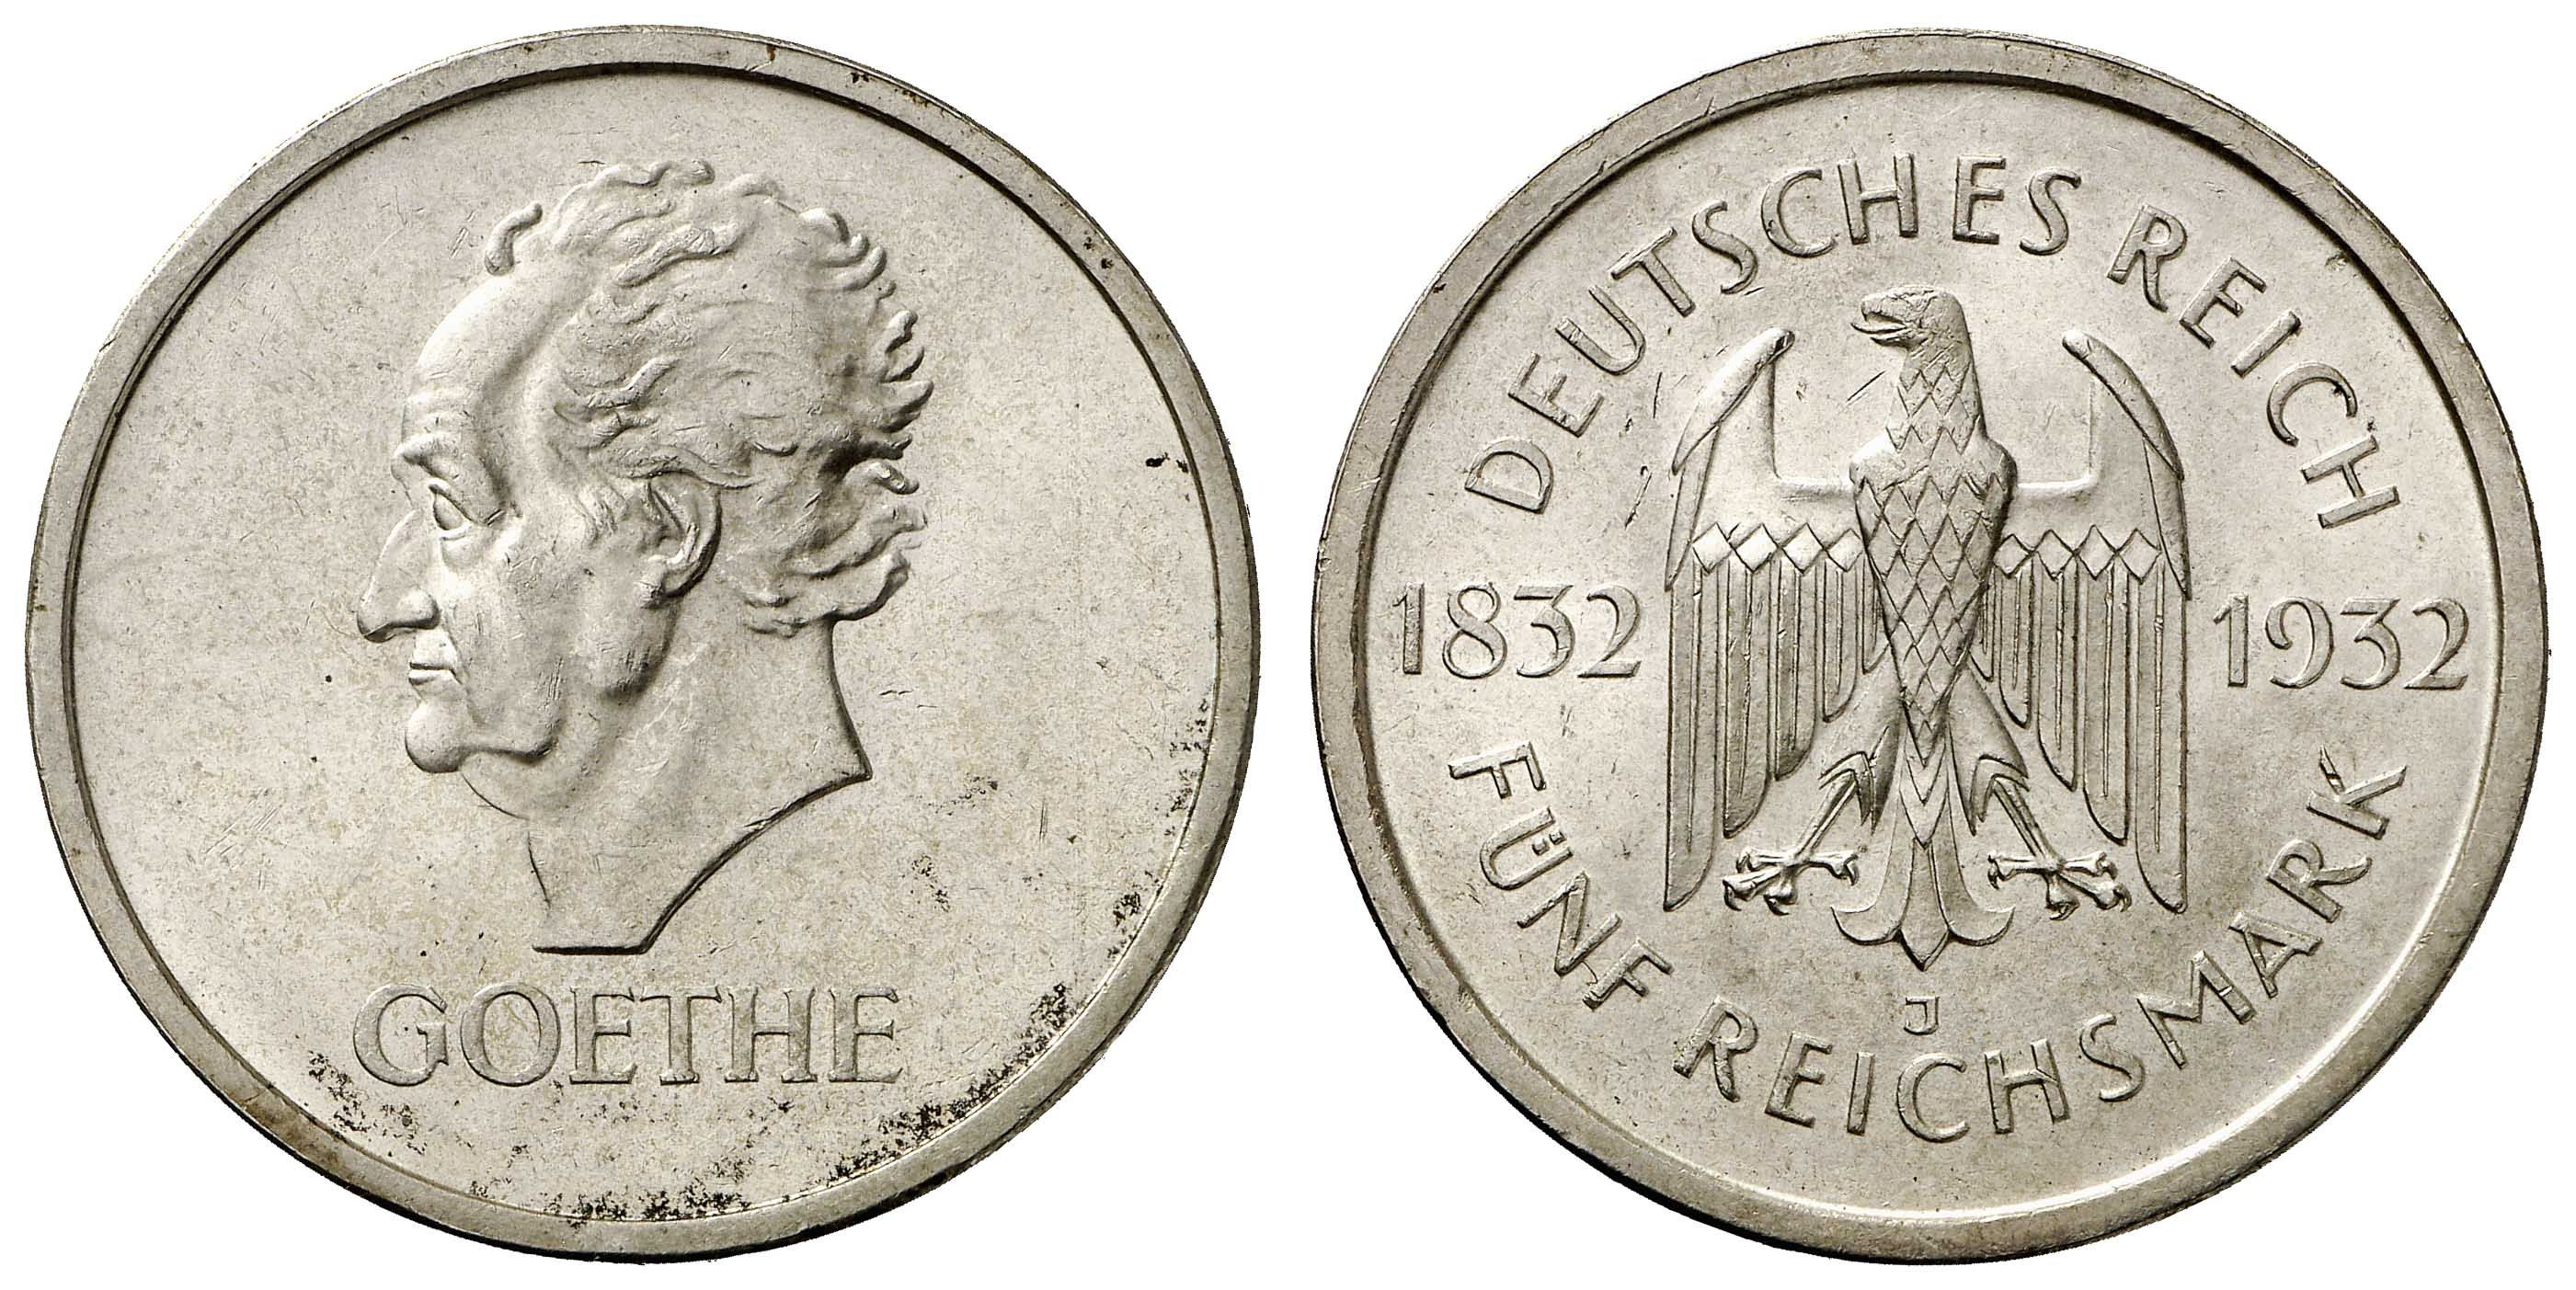 Weimar Republic - GOETHE, 5 RM 1932 J, minimalste Mängel, feine Tönung, RR, Auflage nur 1.634 Ex., Prachtexemplar, nahezu st    Dealer  Auction house Ulrich Felzmann    Auction  Minimum Bid:  1800.00 EUR